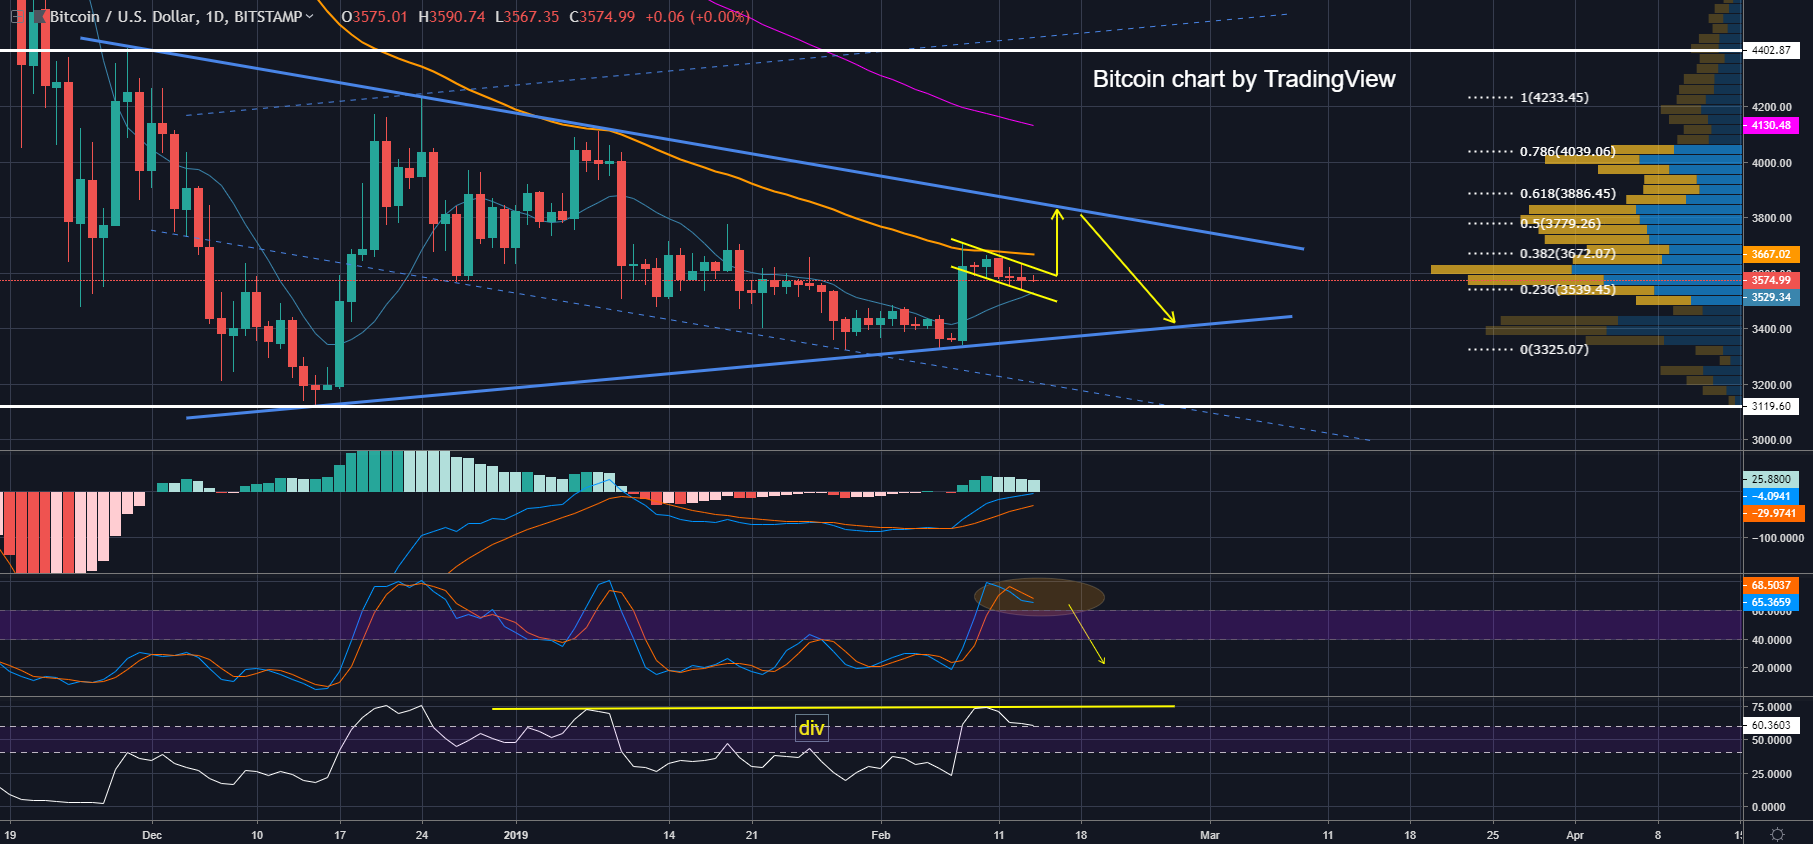 [FEB 14] BTC/USD Bitcoin Price Analysis: Bitcoin Loses in Price on Good News?